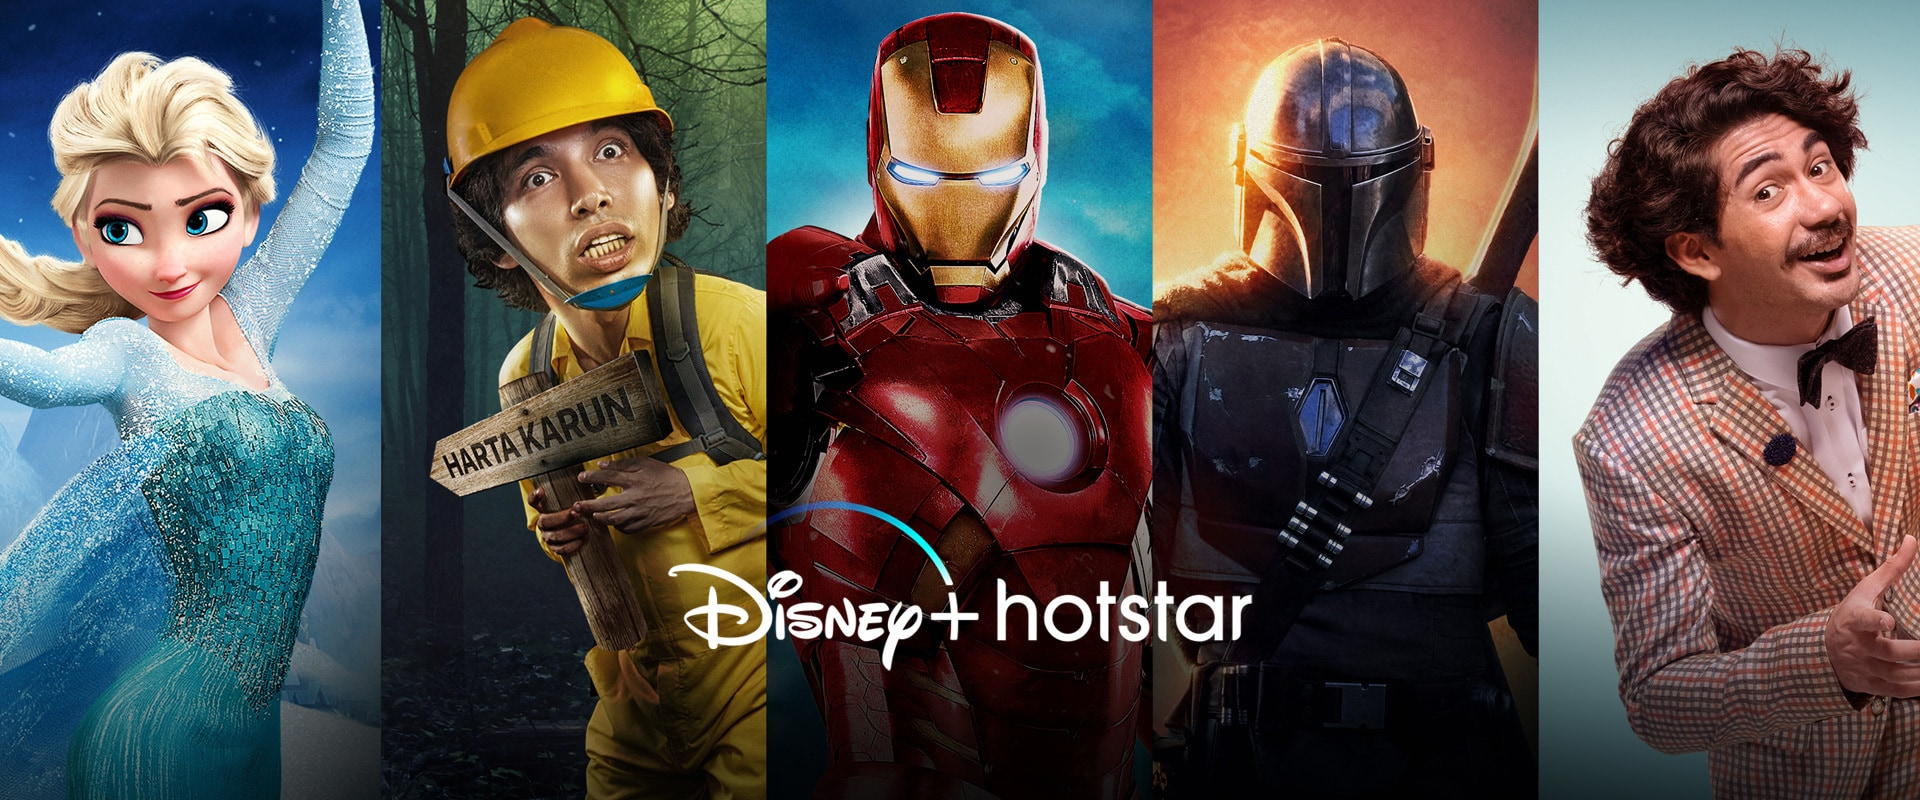 Homepage Hero - Disney+ Hotstar 5 Sep Launch Banner